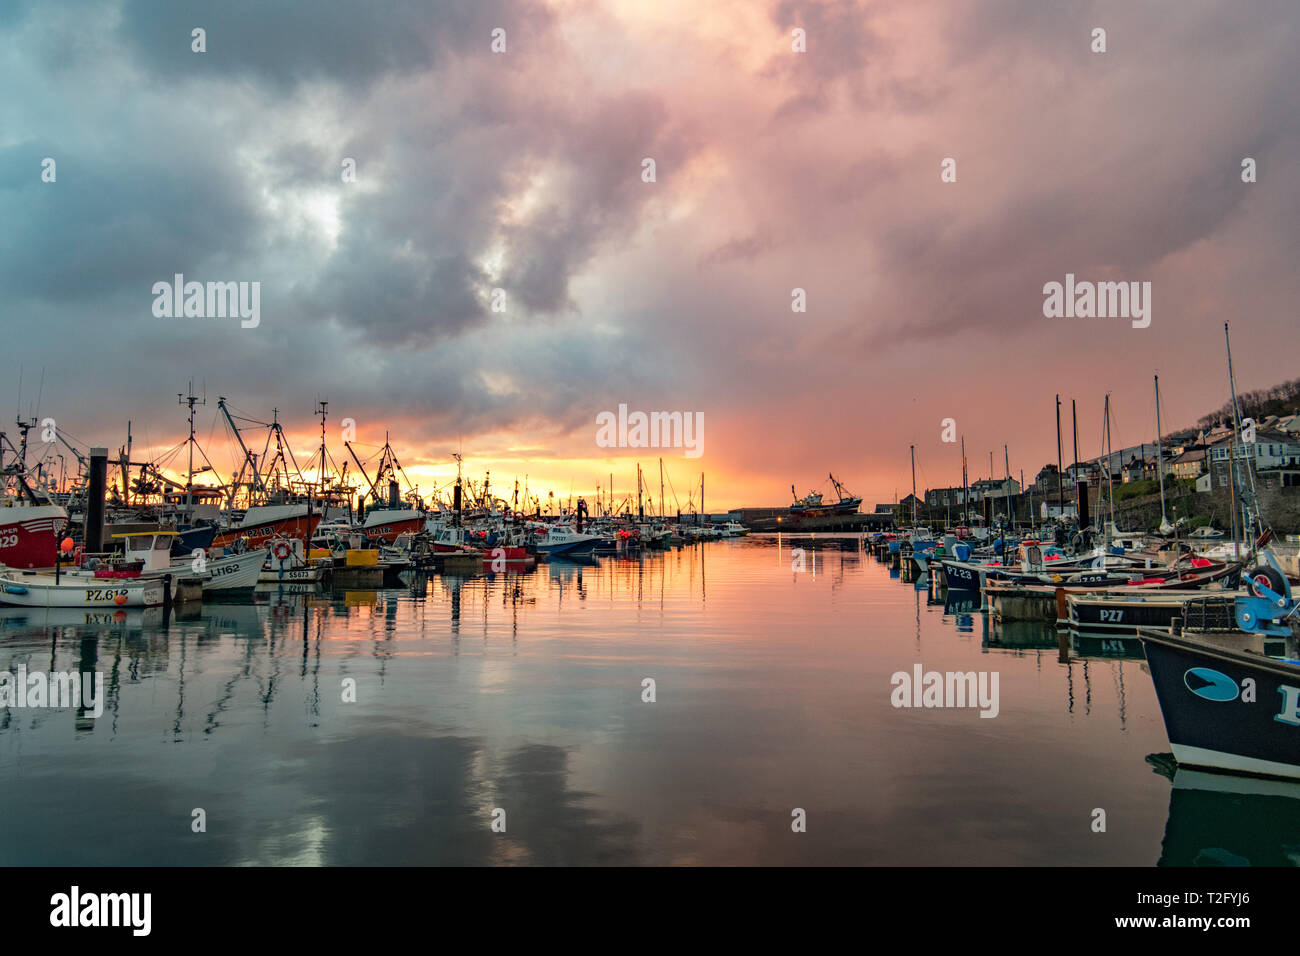 Newlyn, Cornwall, UK. 3rd Apr, 2019. UK Weather. A brief splash of colour at Newlyn Harbour this morning, before the sun dissapeared behind a thick band of clouds. Feeling much colder than yesterday. Credit: Simon Maycock/Alamy Live News Stock Photo